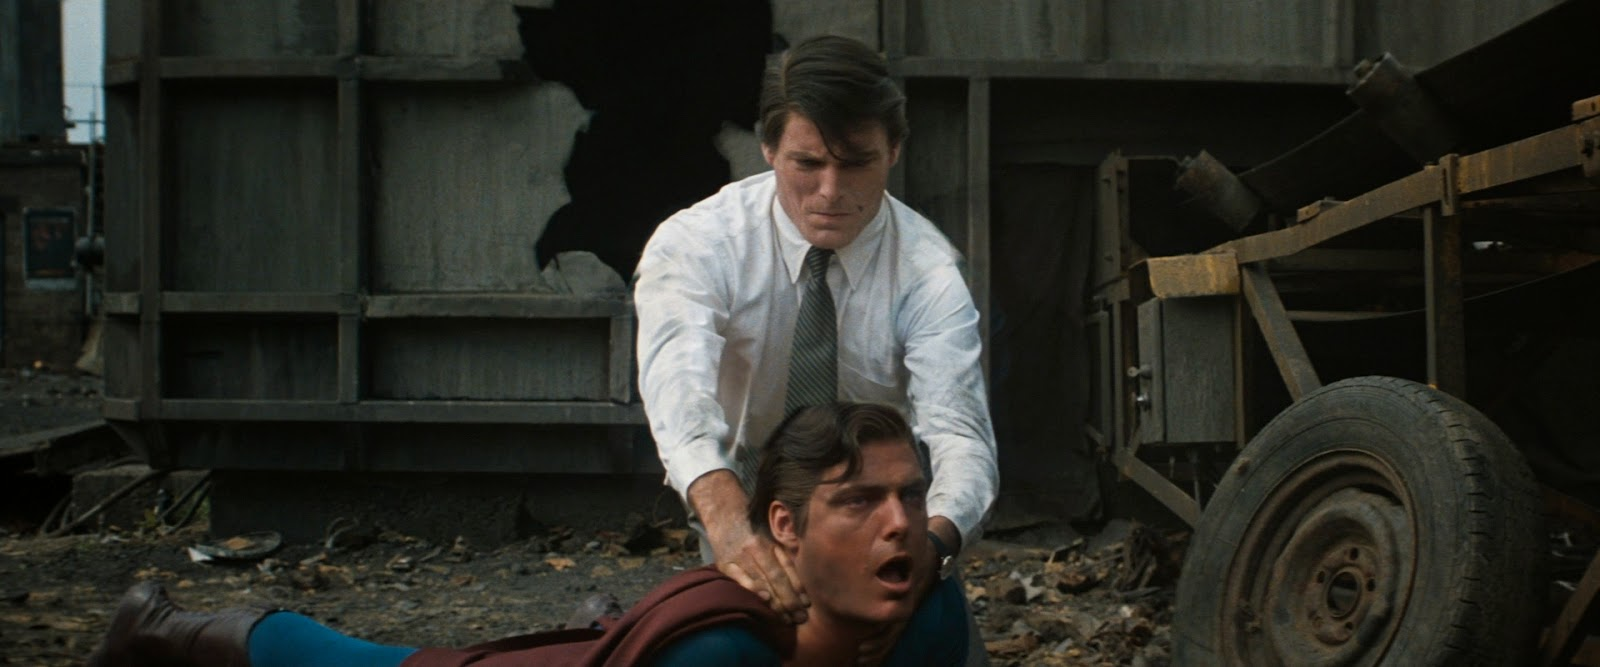 superman3bdcap3_original1